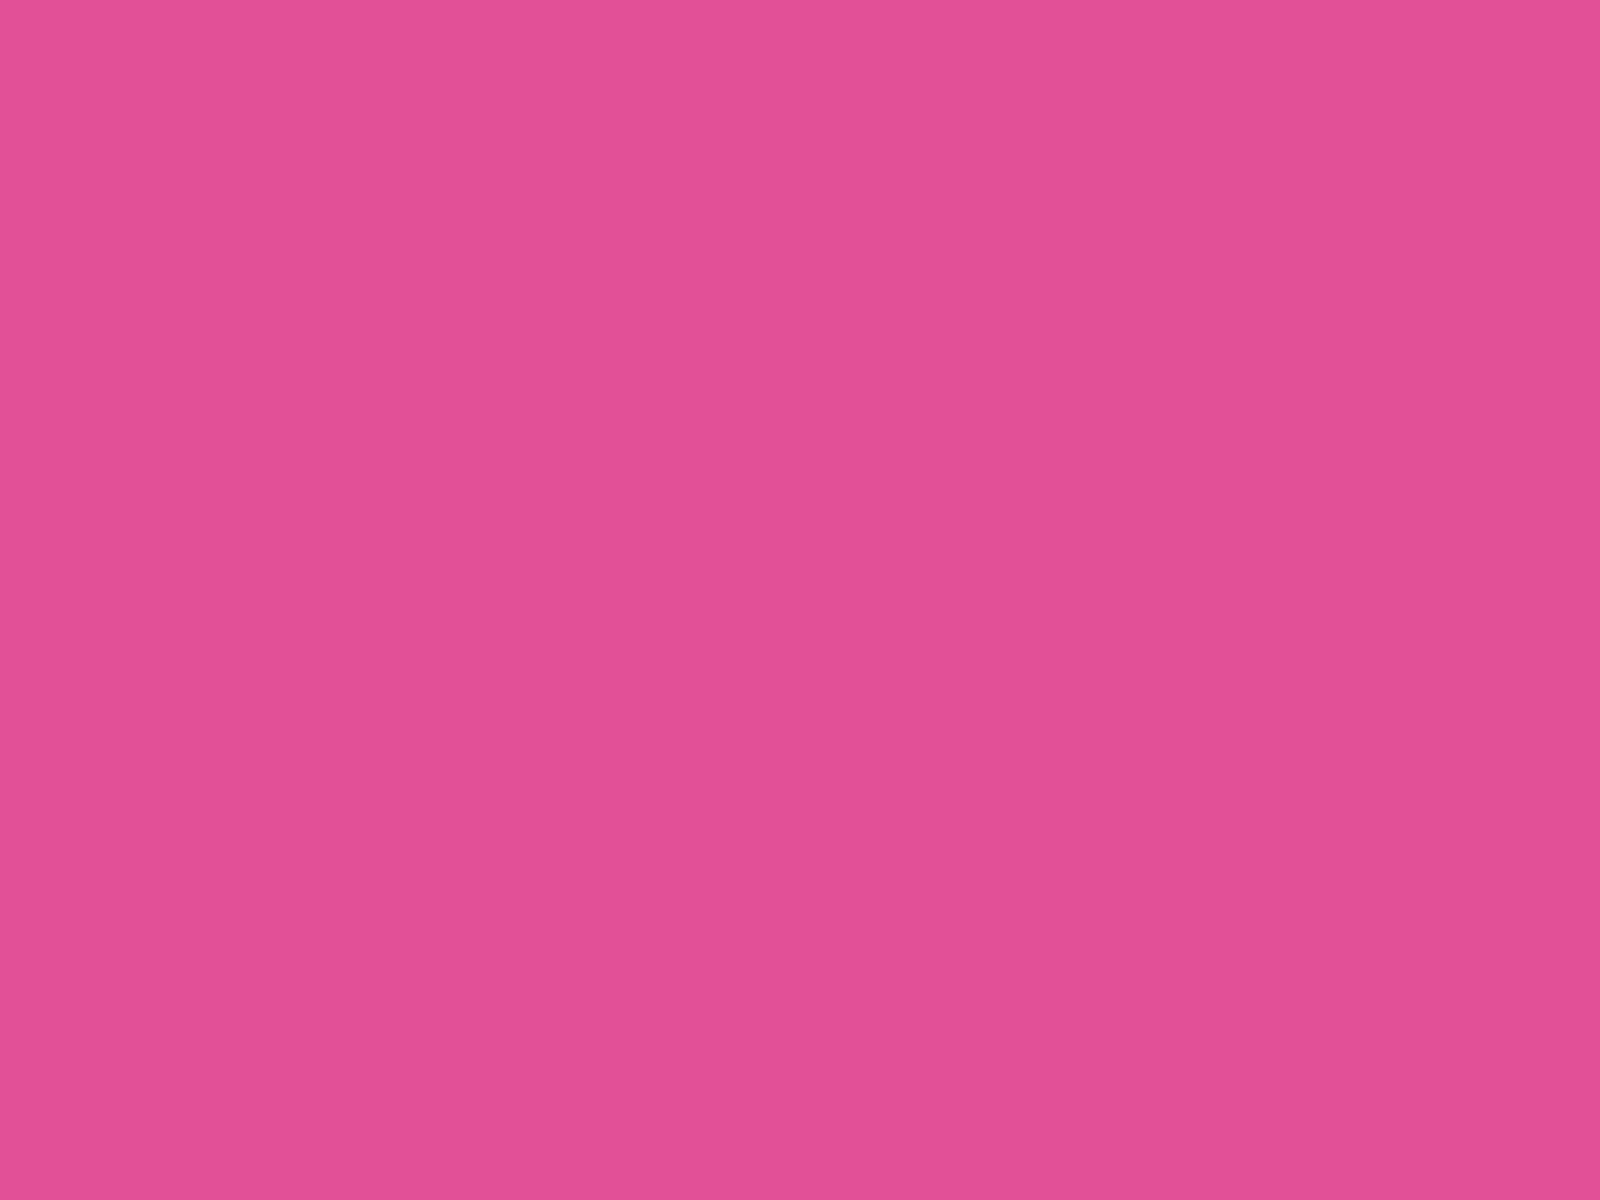 1600x1200 Raspberry Pink Solid Color Background